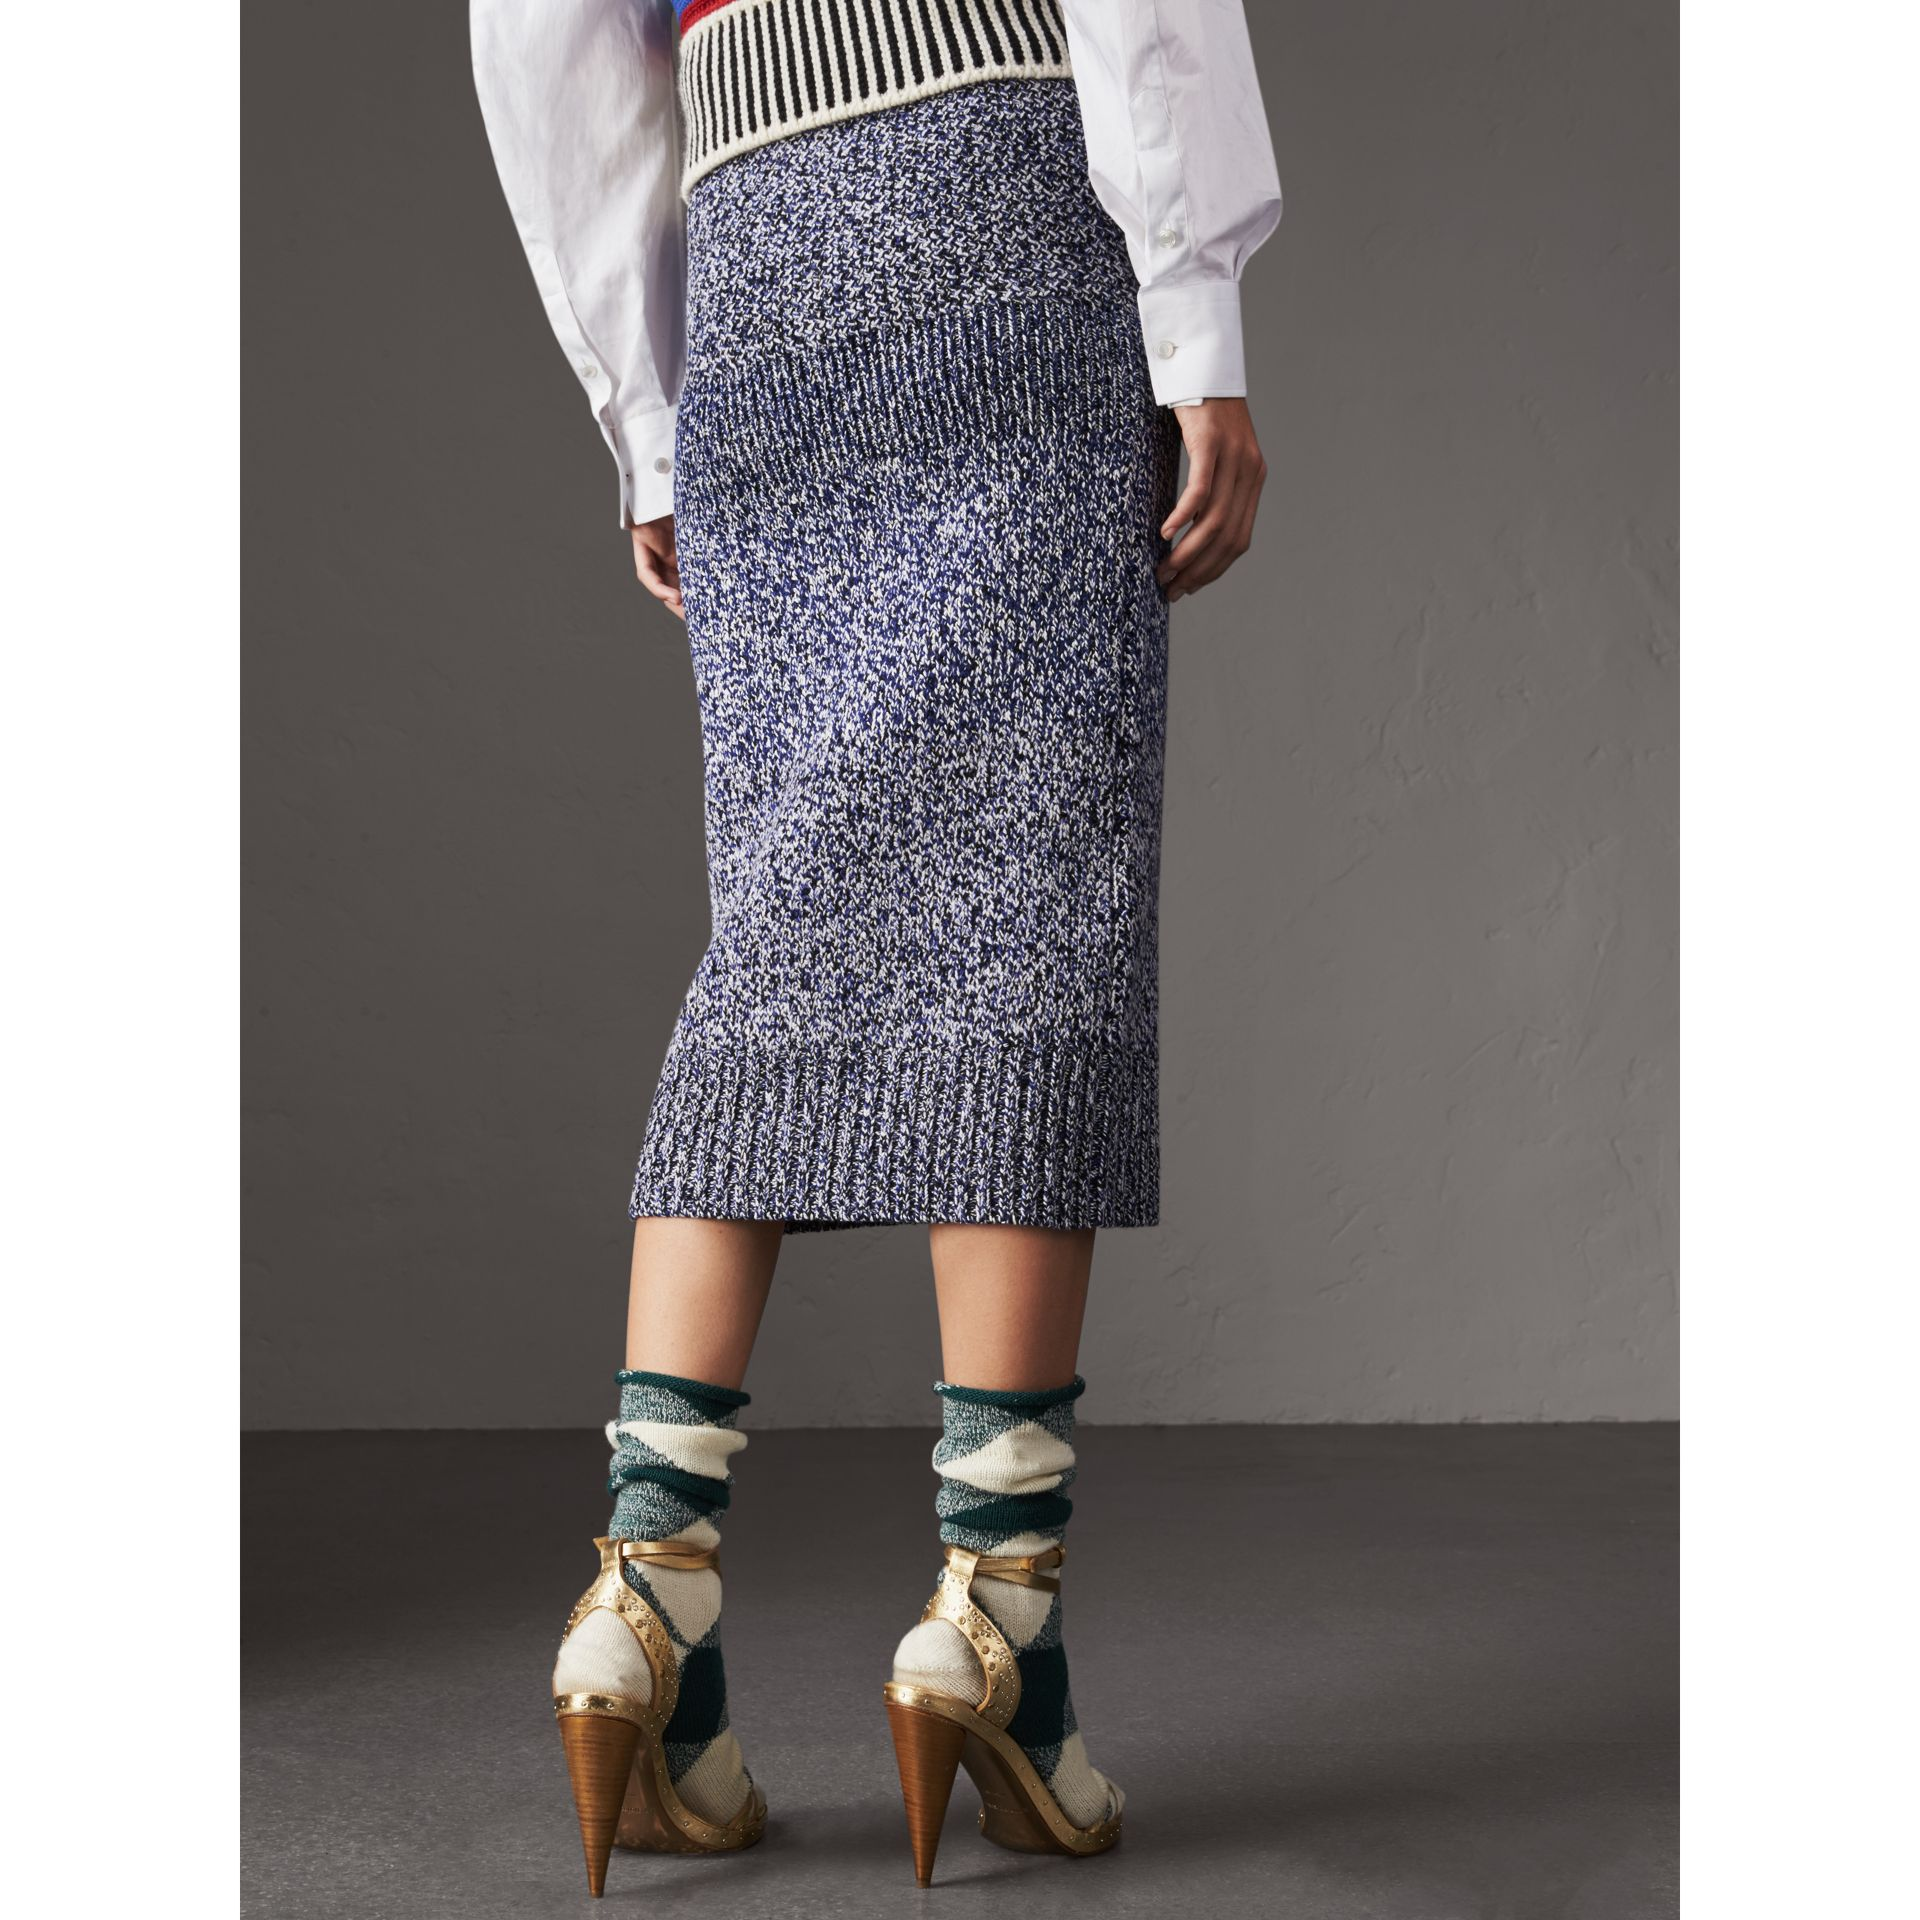 Cashmere Cotton Wool Blend Mouliné Skirt in Bright Navy/black - Women | Burberry United States - gallery image 2